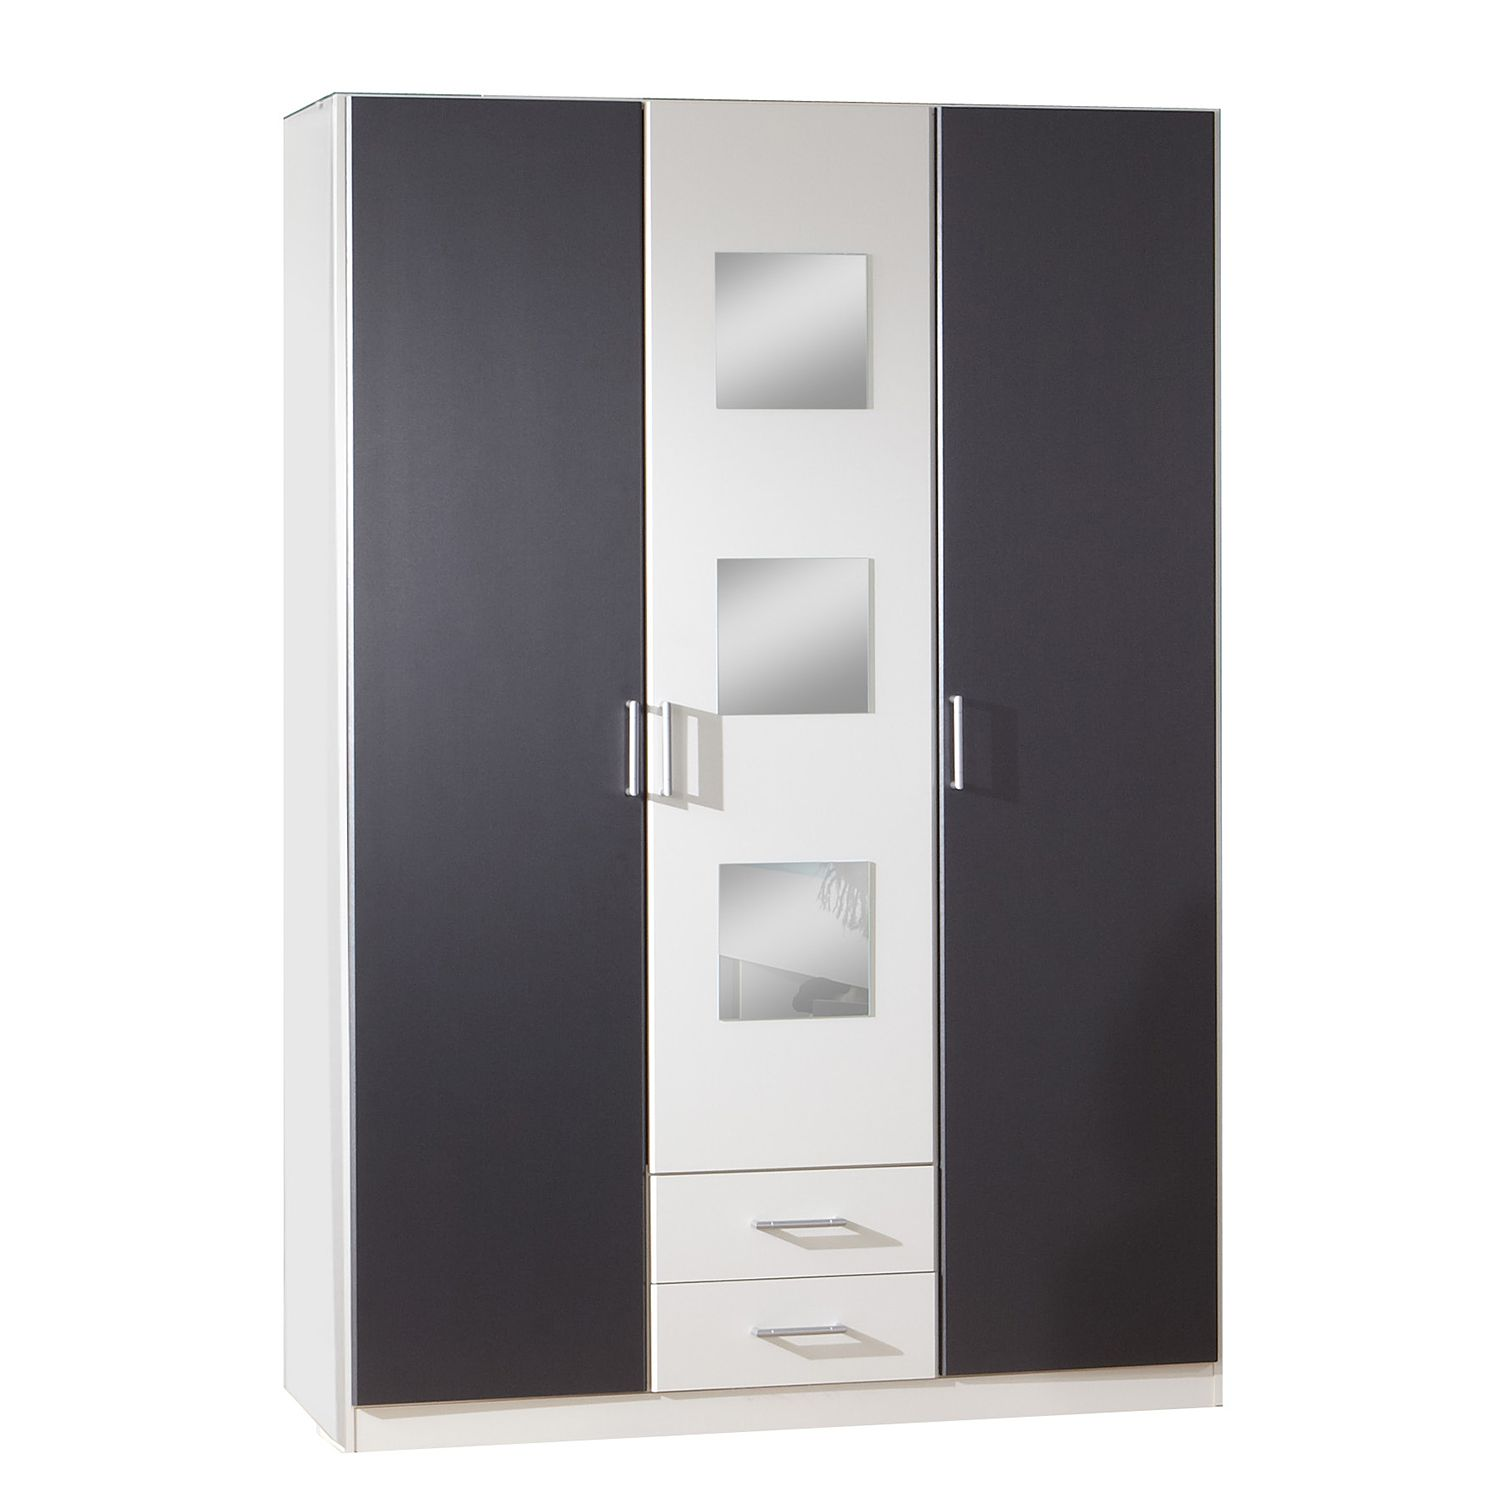 Armoire à vêtements Rocco - Blanc alpin / Anthracite, Wimex